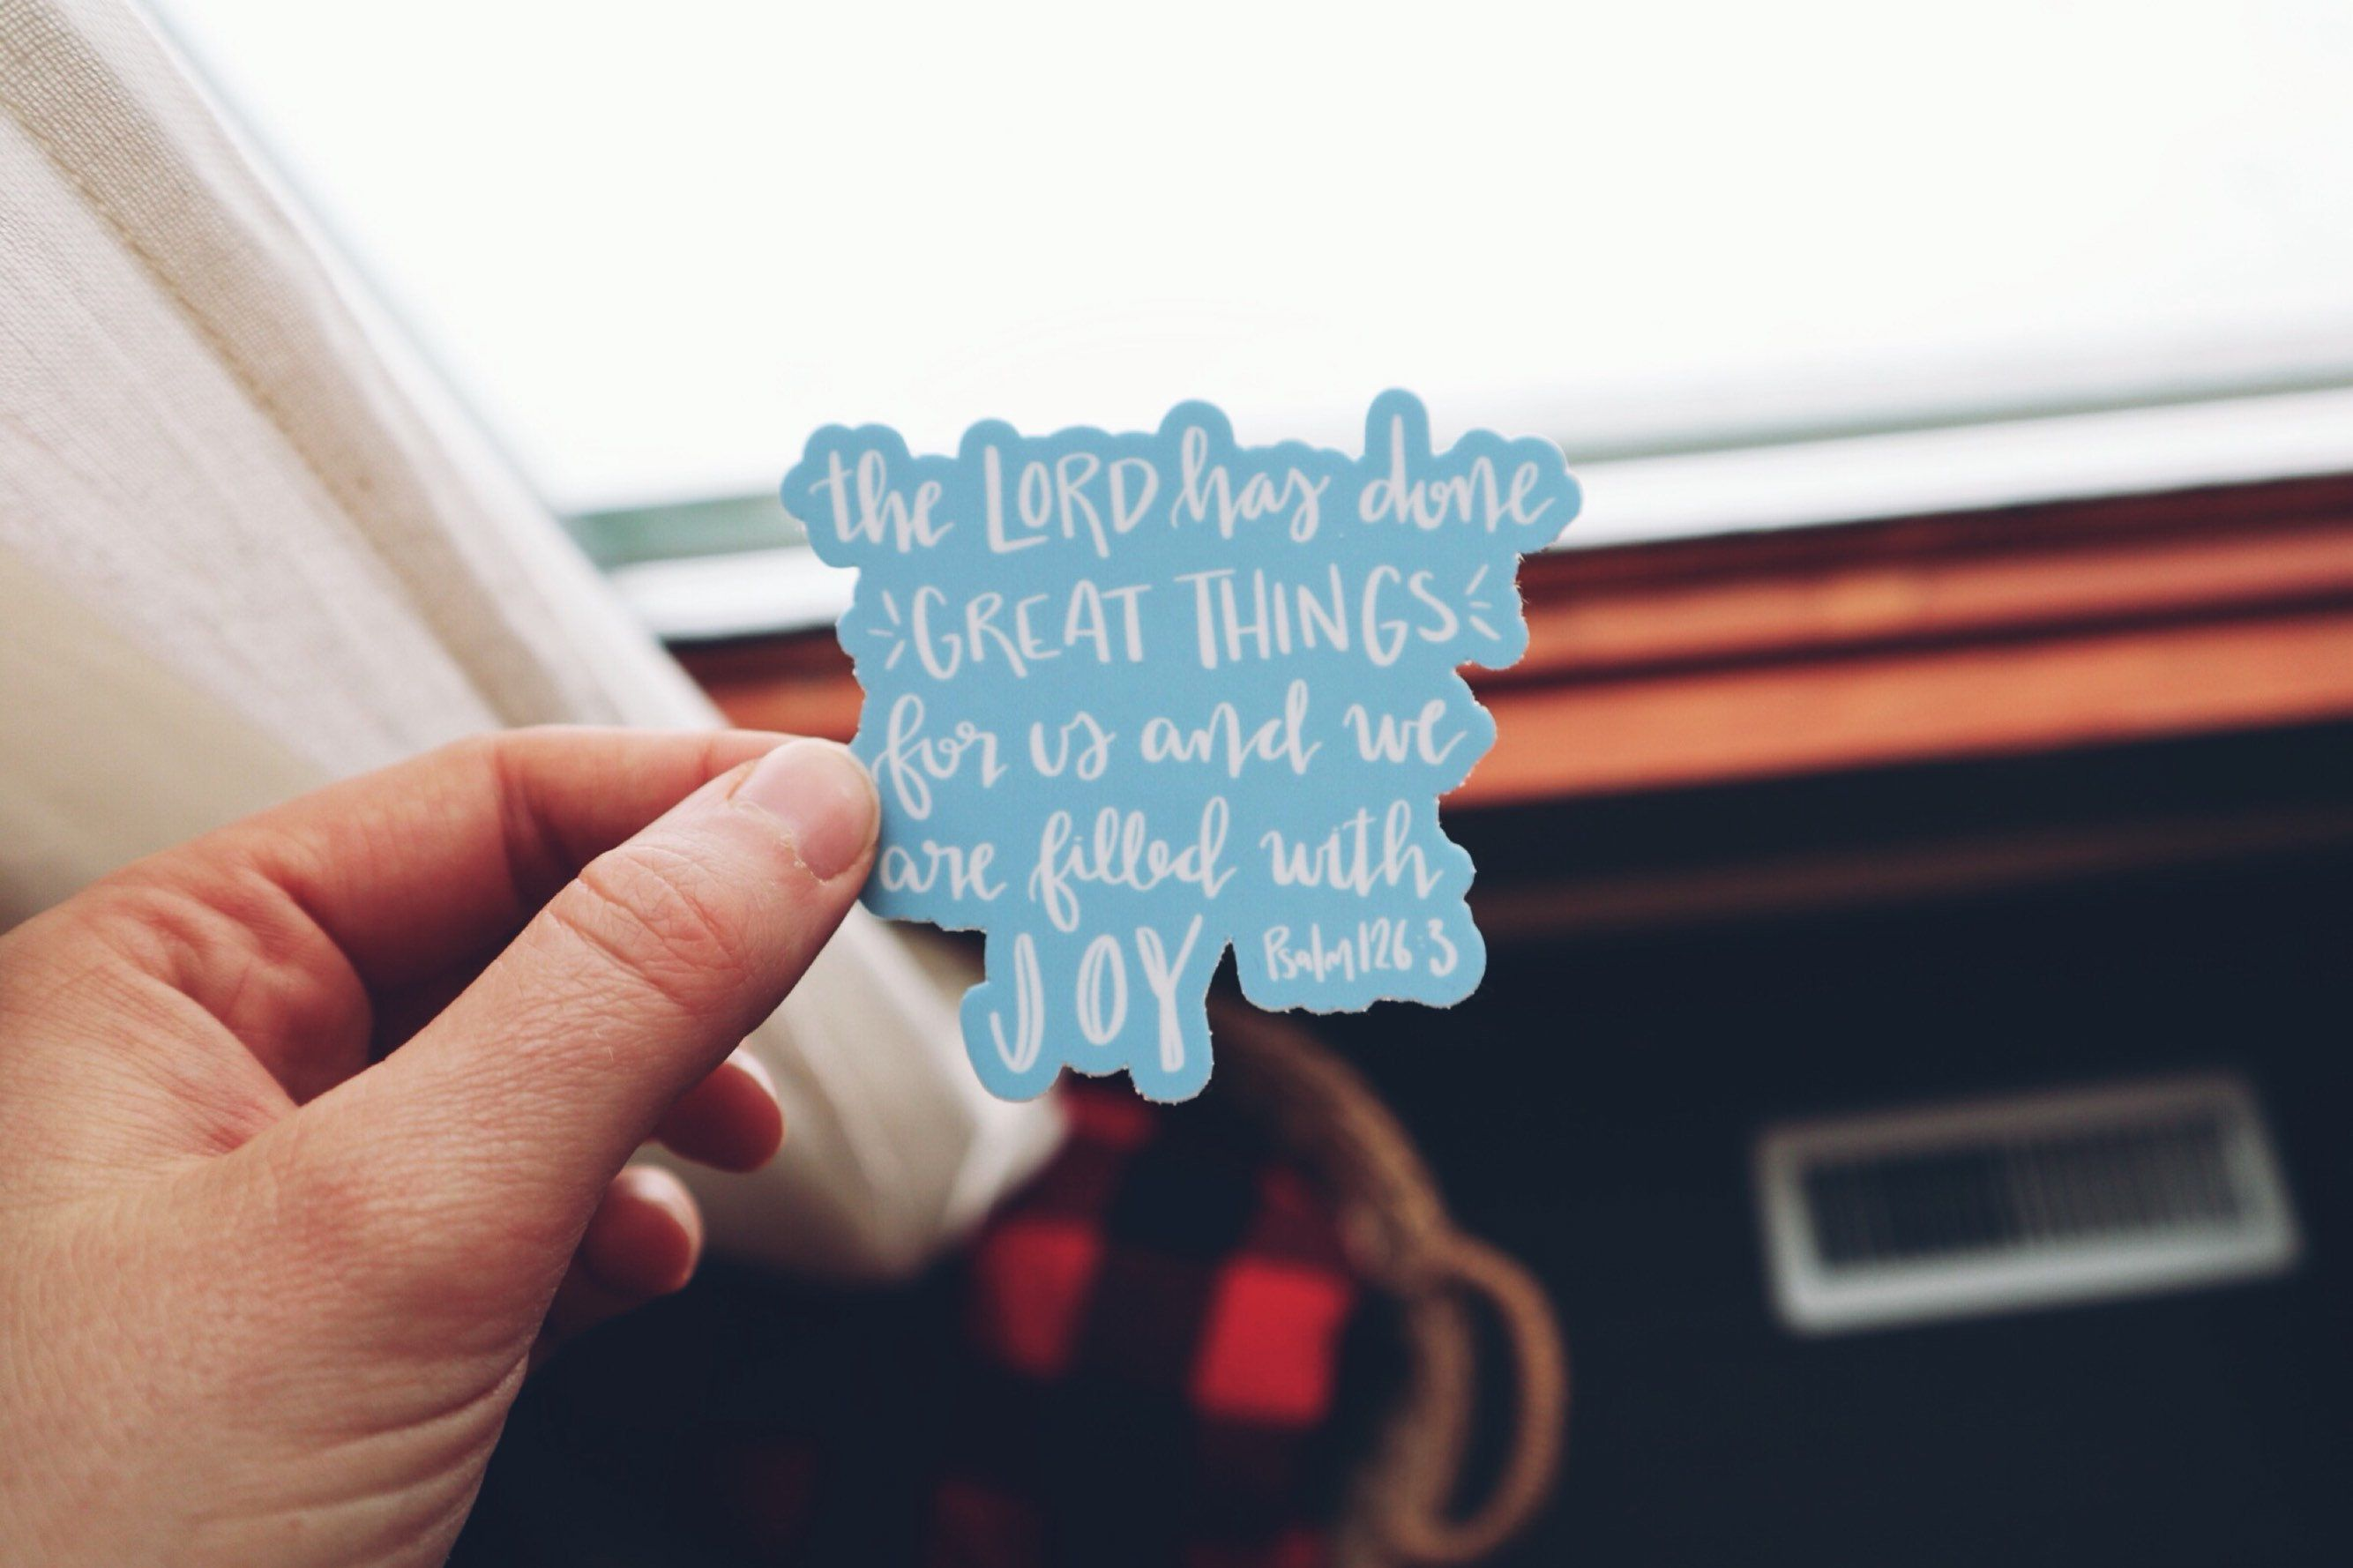 Vinyl Sticker The Lord Has Done Great Things For Us And We Are Filled With Joy Christian Art Laptop Sticker Christian Sticker In 2020 Christian Stickers Vinyl Sticker Christian Hand Lettering